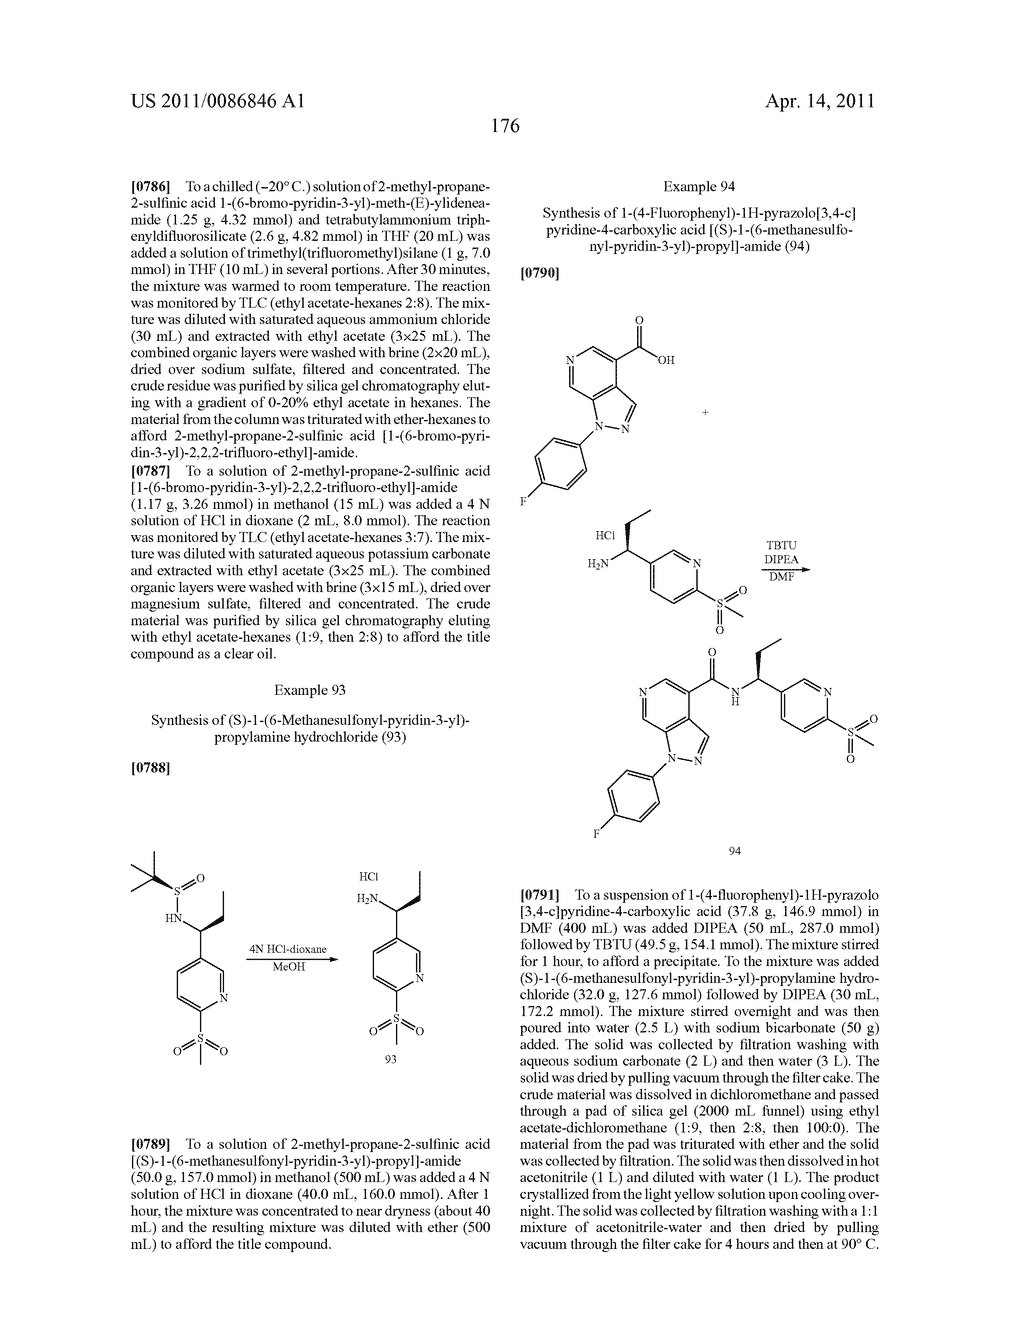 Azaindazole Compounds As CCR1 Receptor Antagonists - diagram, schematic, and image 177